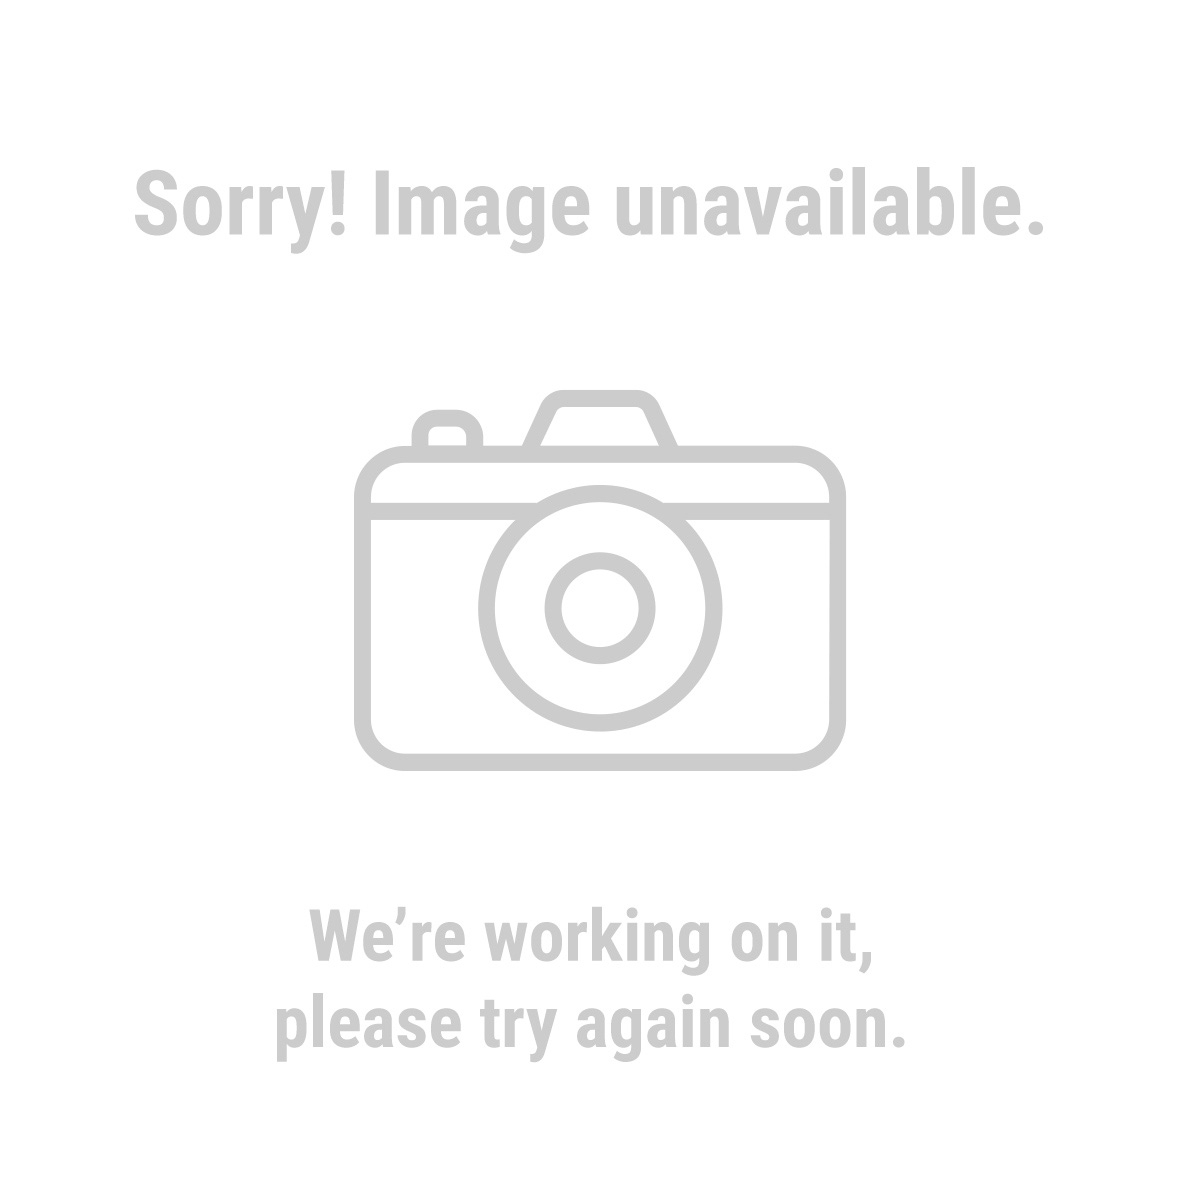 Haul Master Automotive 69646 1000 Lb. Steel Loading Ramps, Set of Two